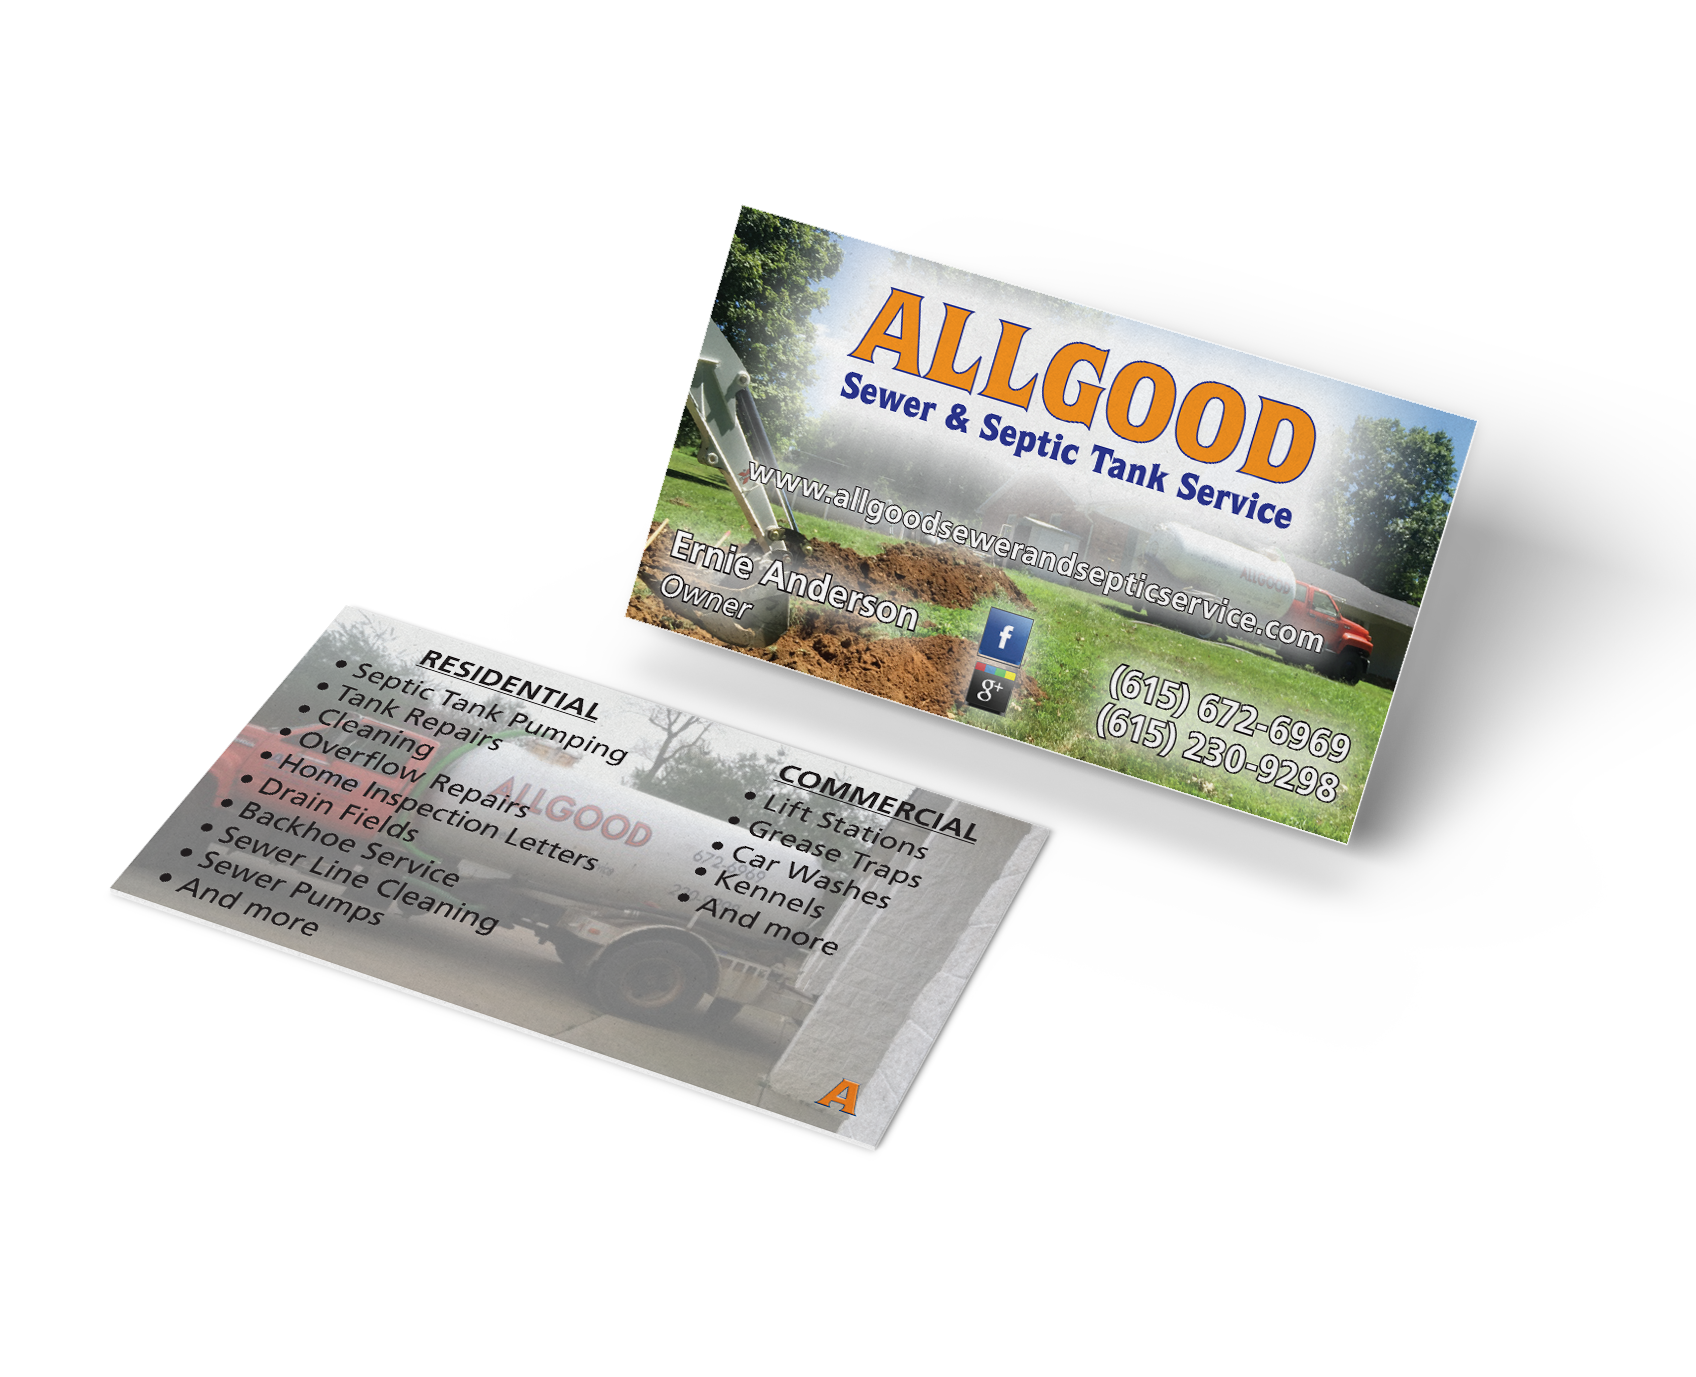 Allgood's business card